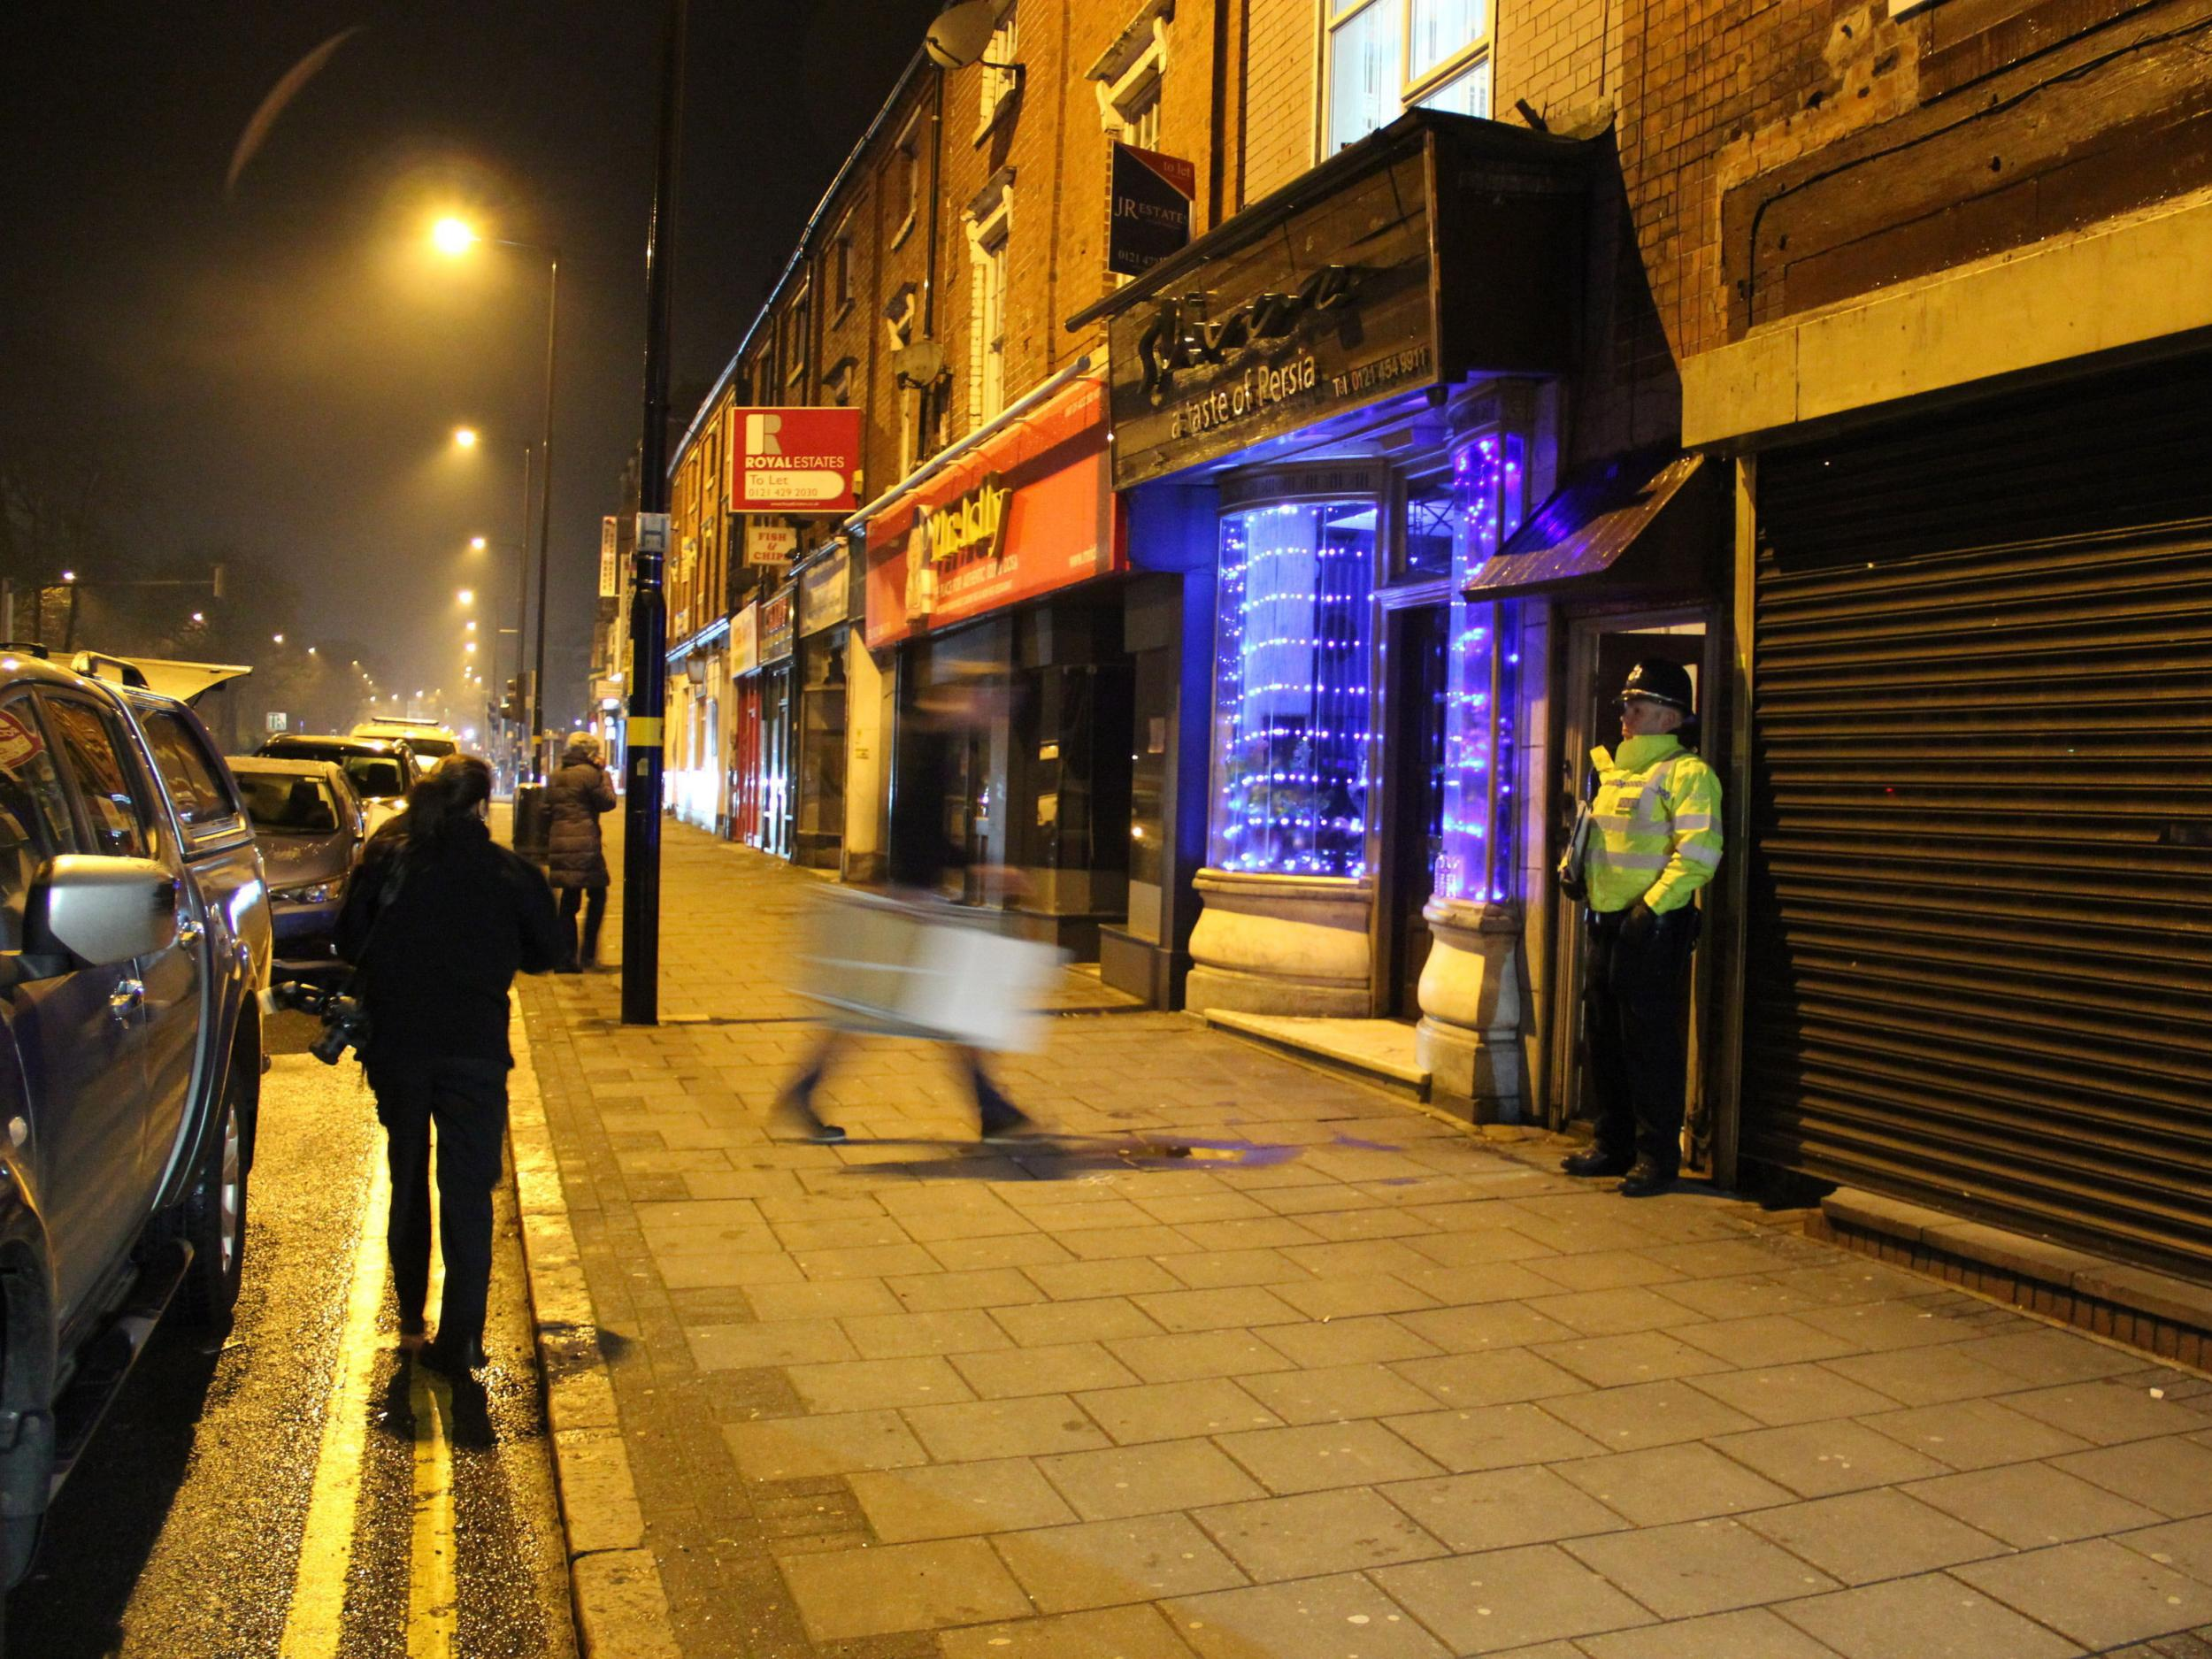 Night lights queens walk london - Anti Terror Police Make Arrests After Raid On Address In Birmingham Linked To Westminster Attack The Independent